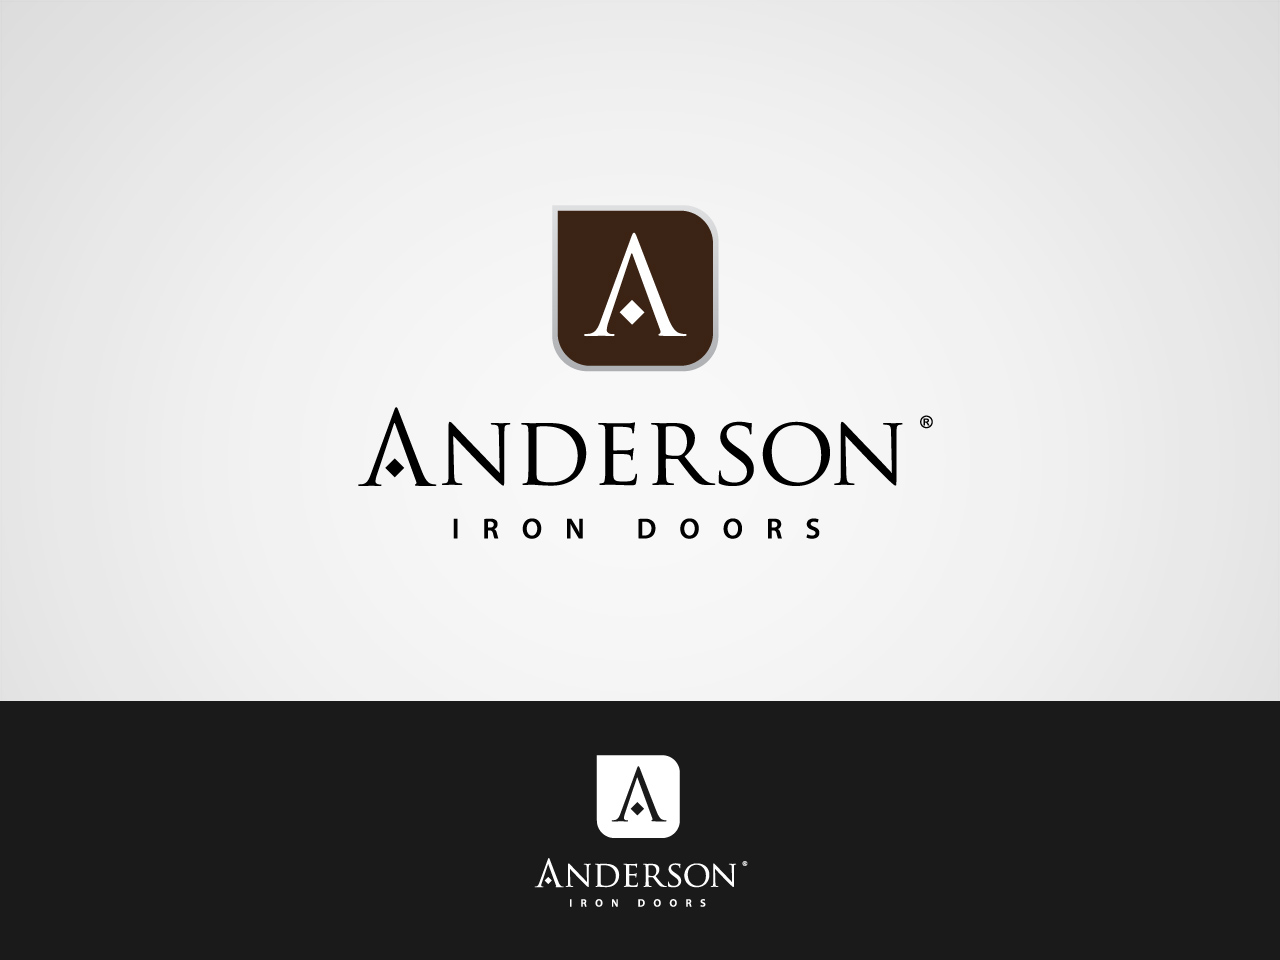 Logo Design by jpbituin - Entry No. 6 in the Logo Design Contest Artistic Logo Design for Anderson Iron Doors.